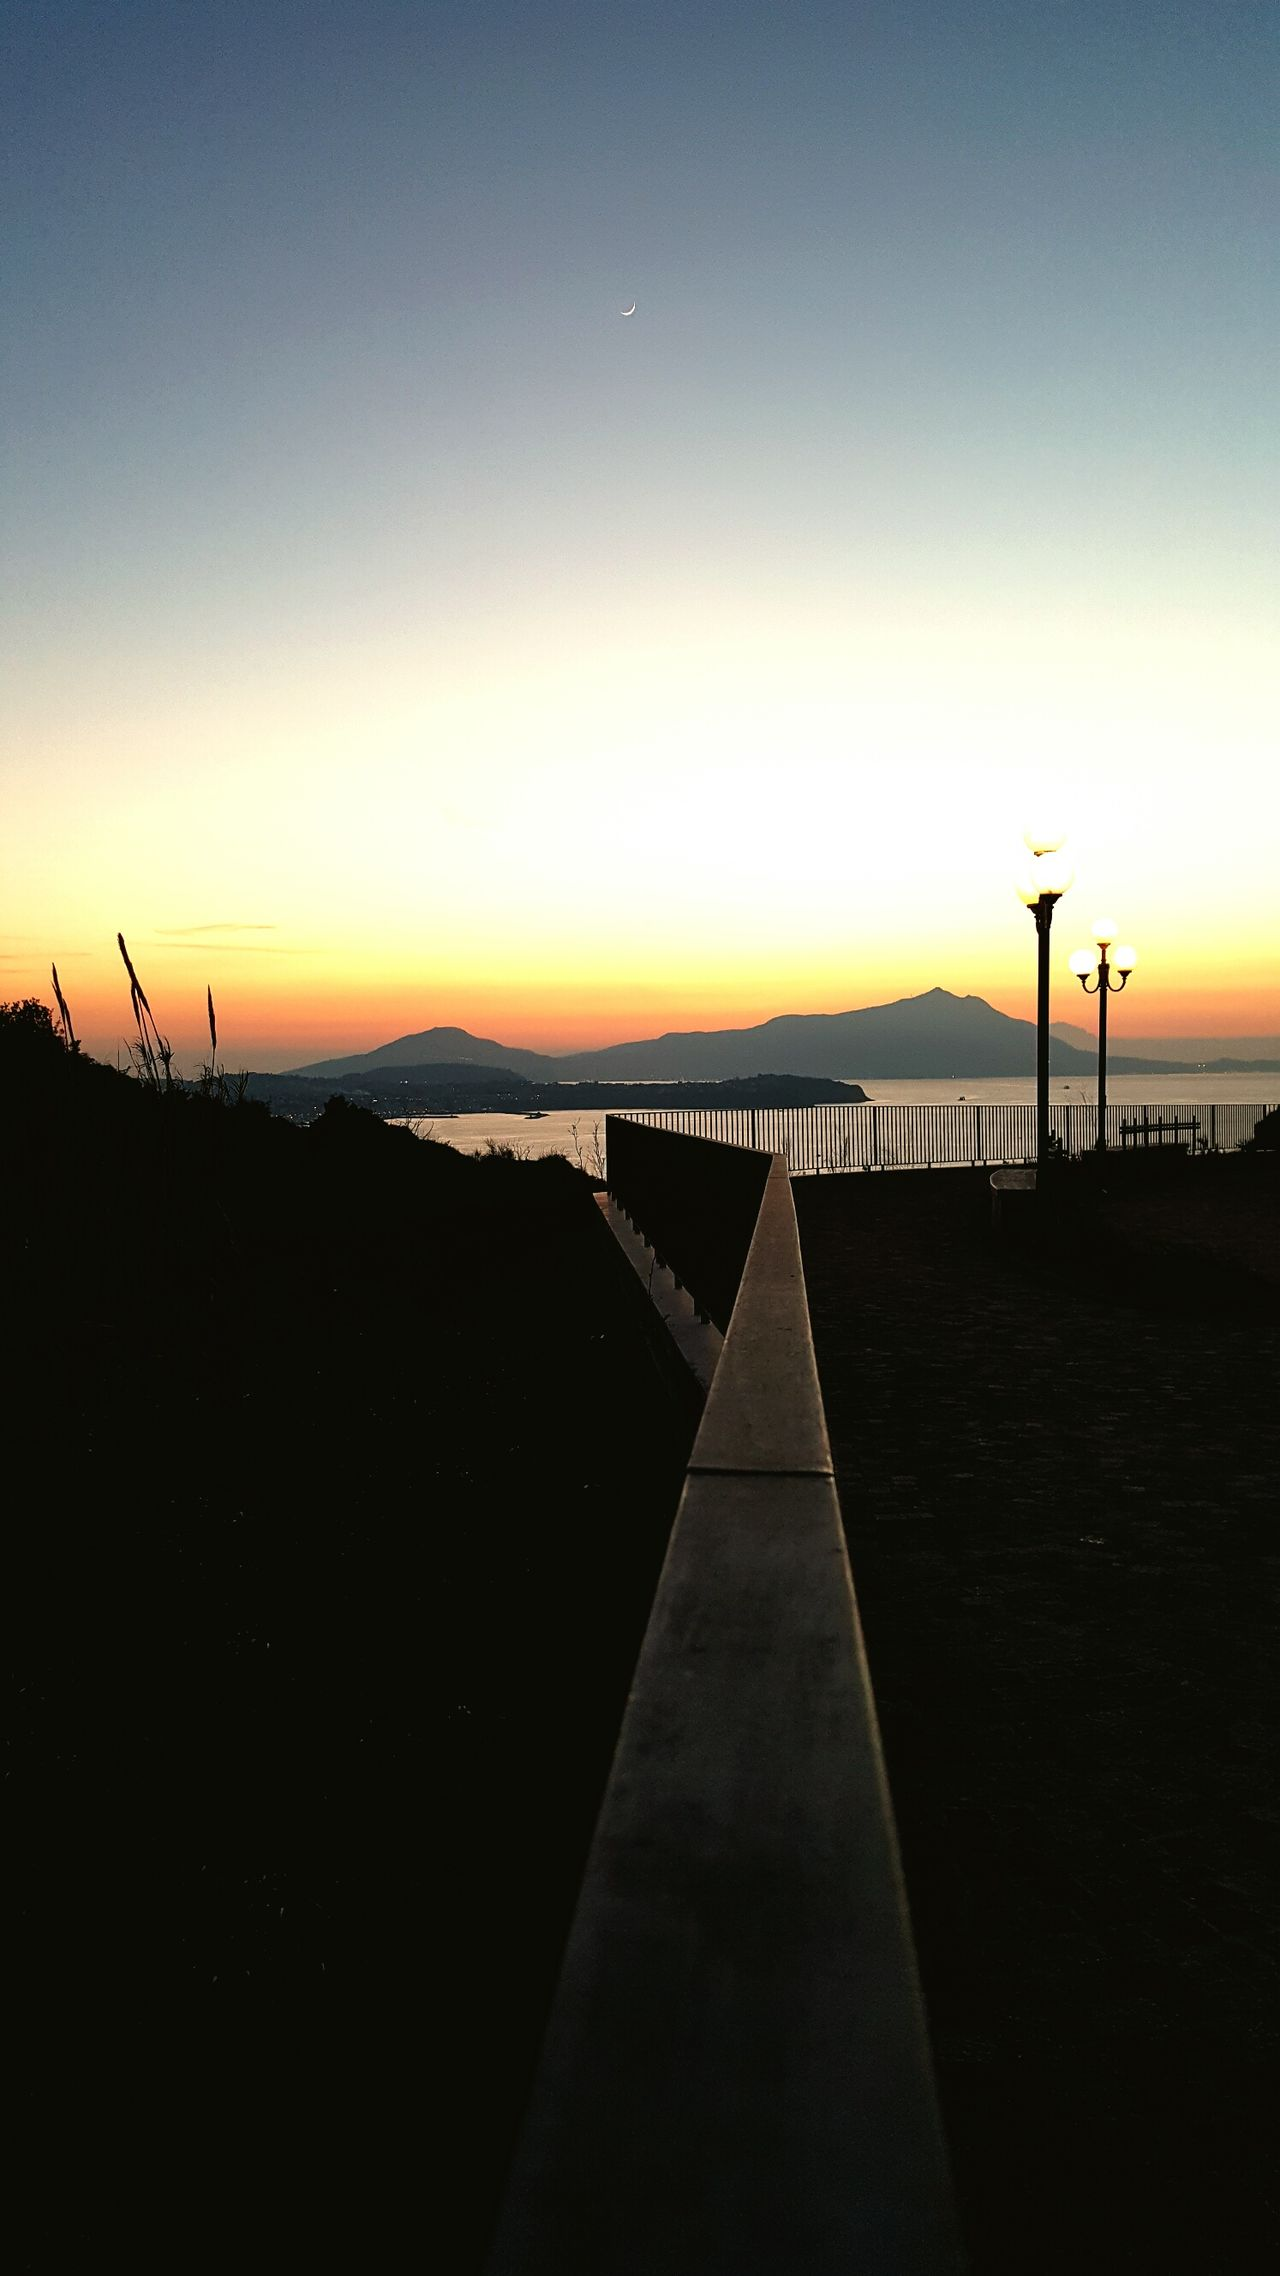 Night Beauty In Nature Sky Nature Outdoors Sunset No People Tranquility Skylovers Sky Porn Seaview Napoli ❤ Napoli Sea And Sky Tranquil Scene Beauty In Nature Landscape Landscape_photography Nature Scenics Sea Architecture Illuminated